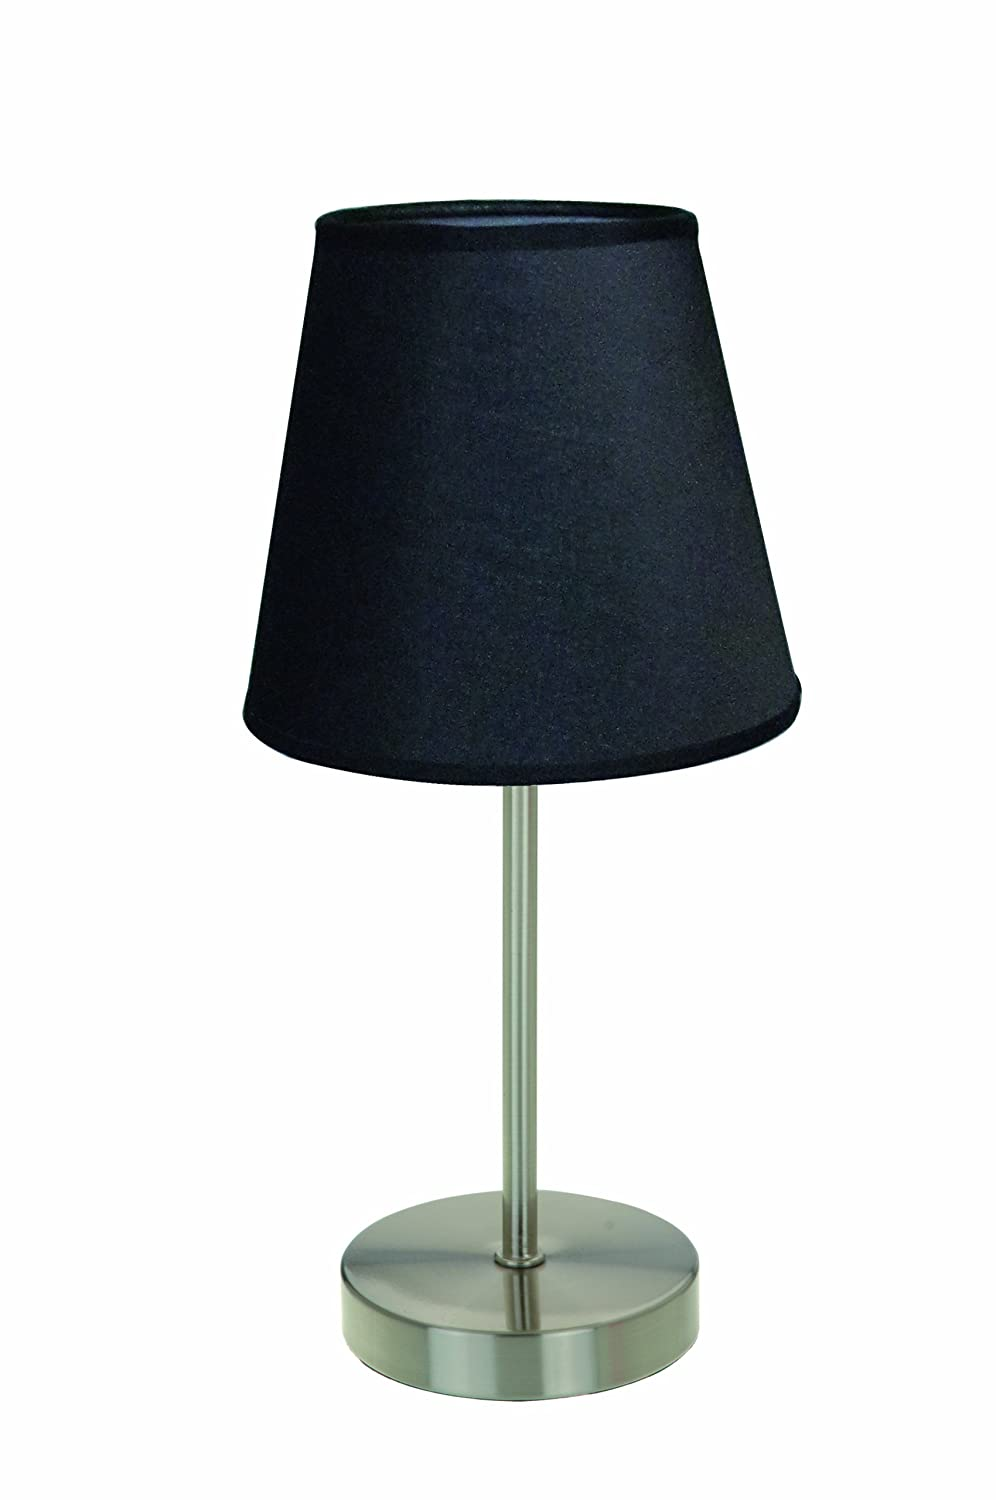 Simple designs lt2013 blk sand nickel mini basic table lamp with simple designs lt2013 blk sand nickel mini basic table lamp with fabric shade black bedroom table lamps amazon geotapseo Gallery